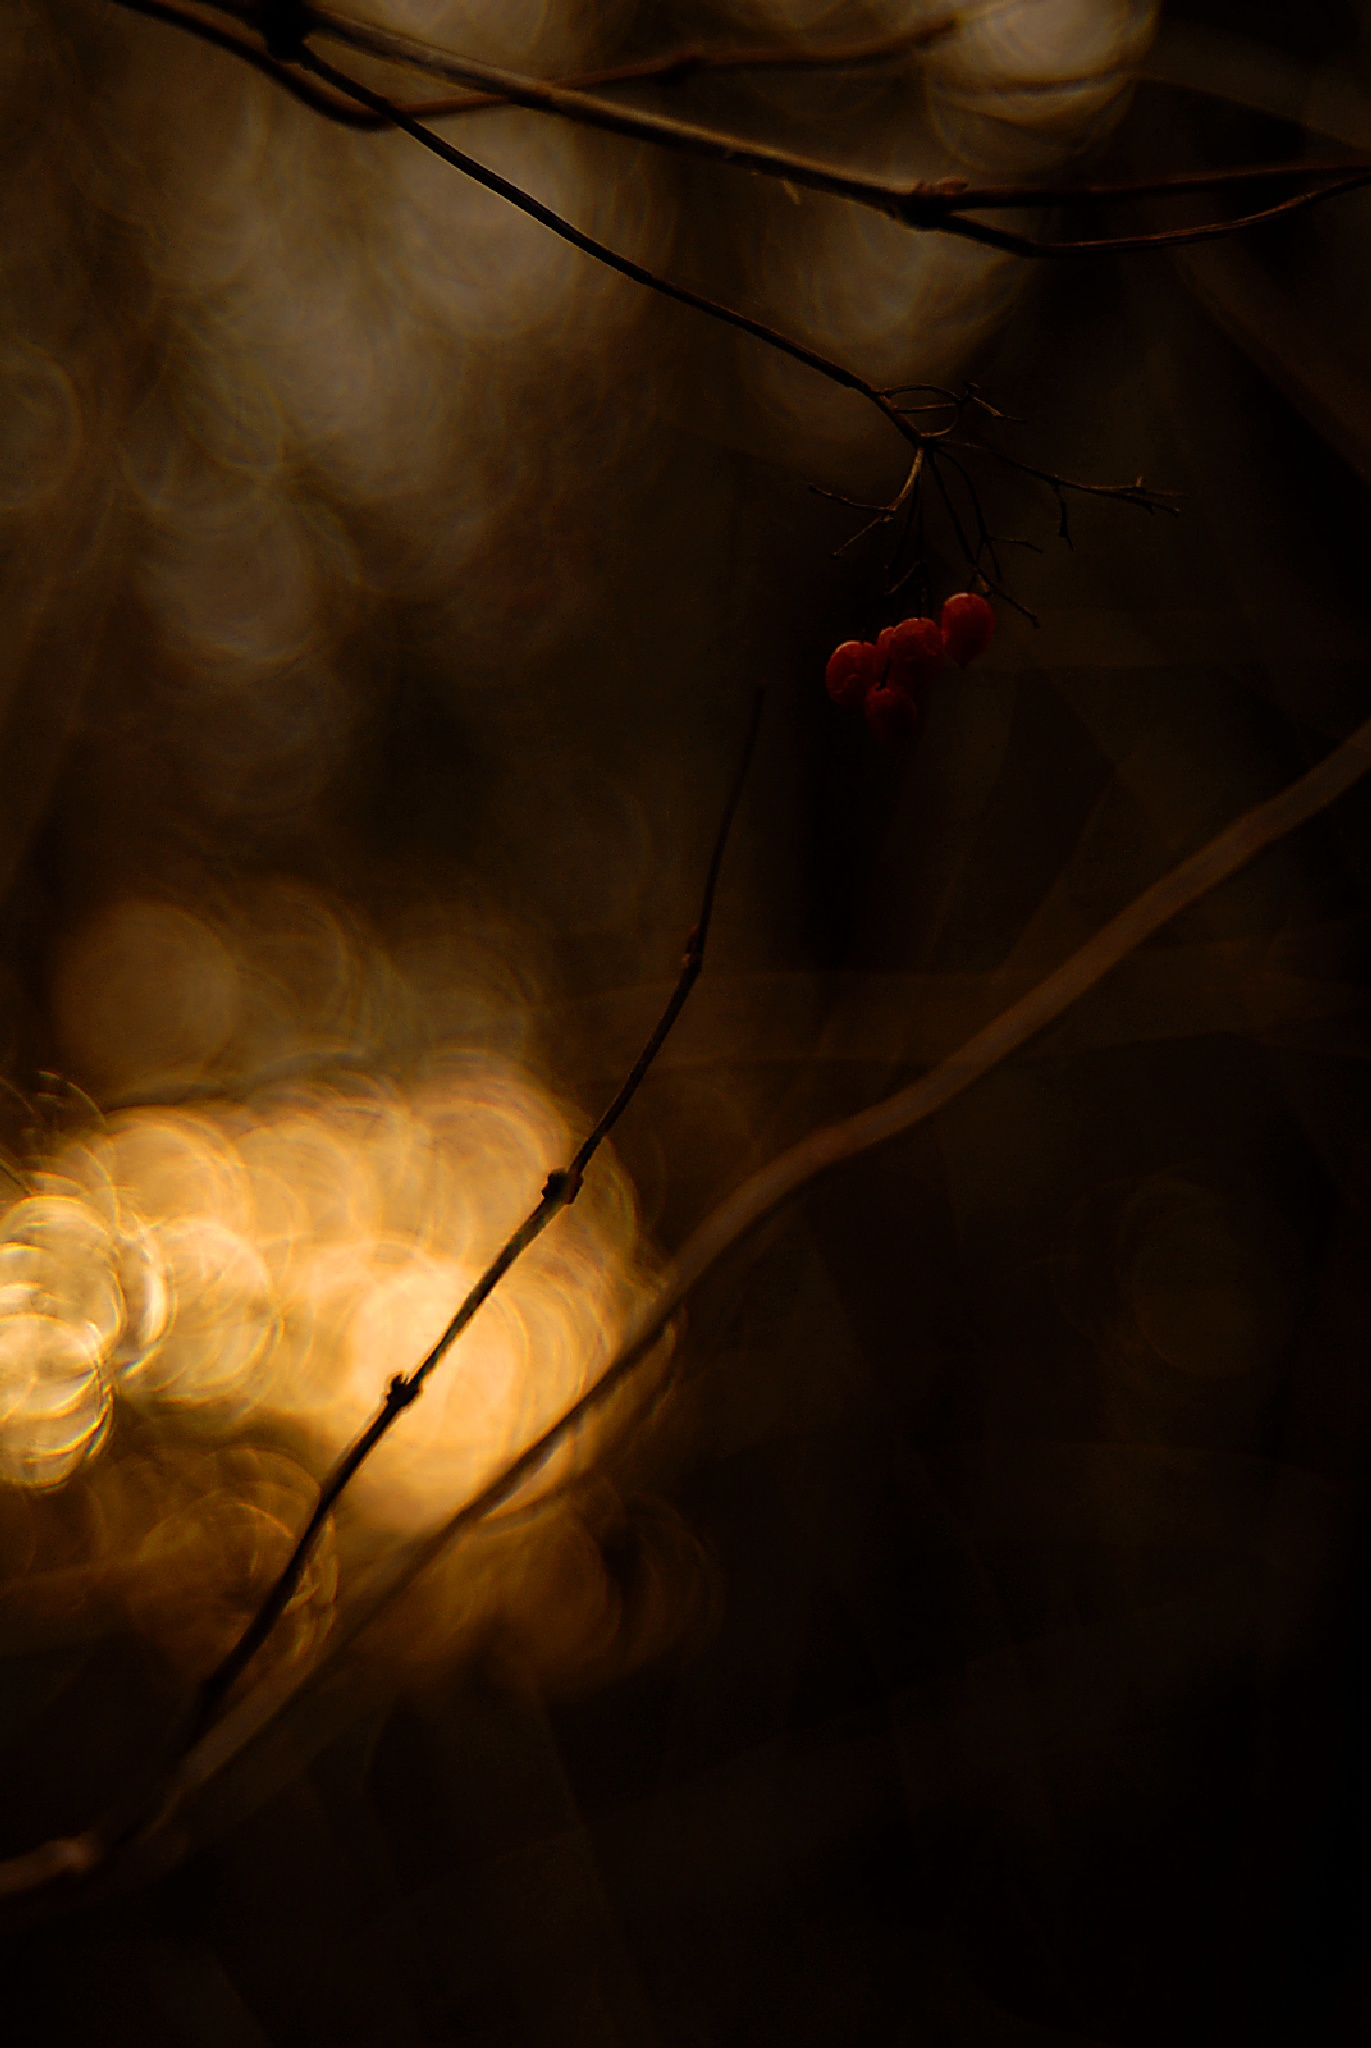 What You Have Seen In The Darkness by RolandPohl